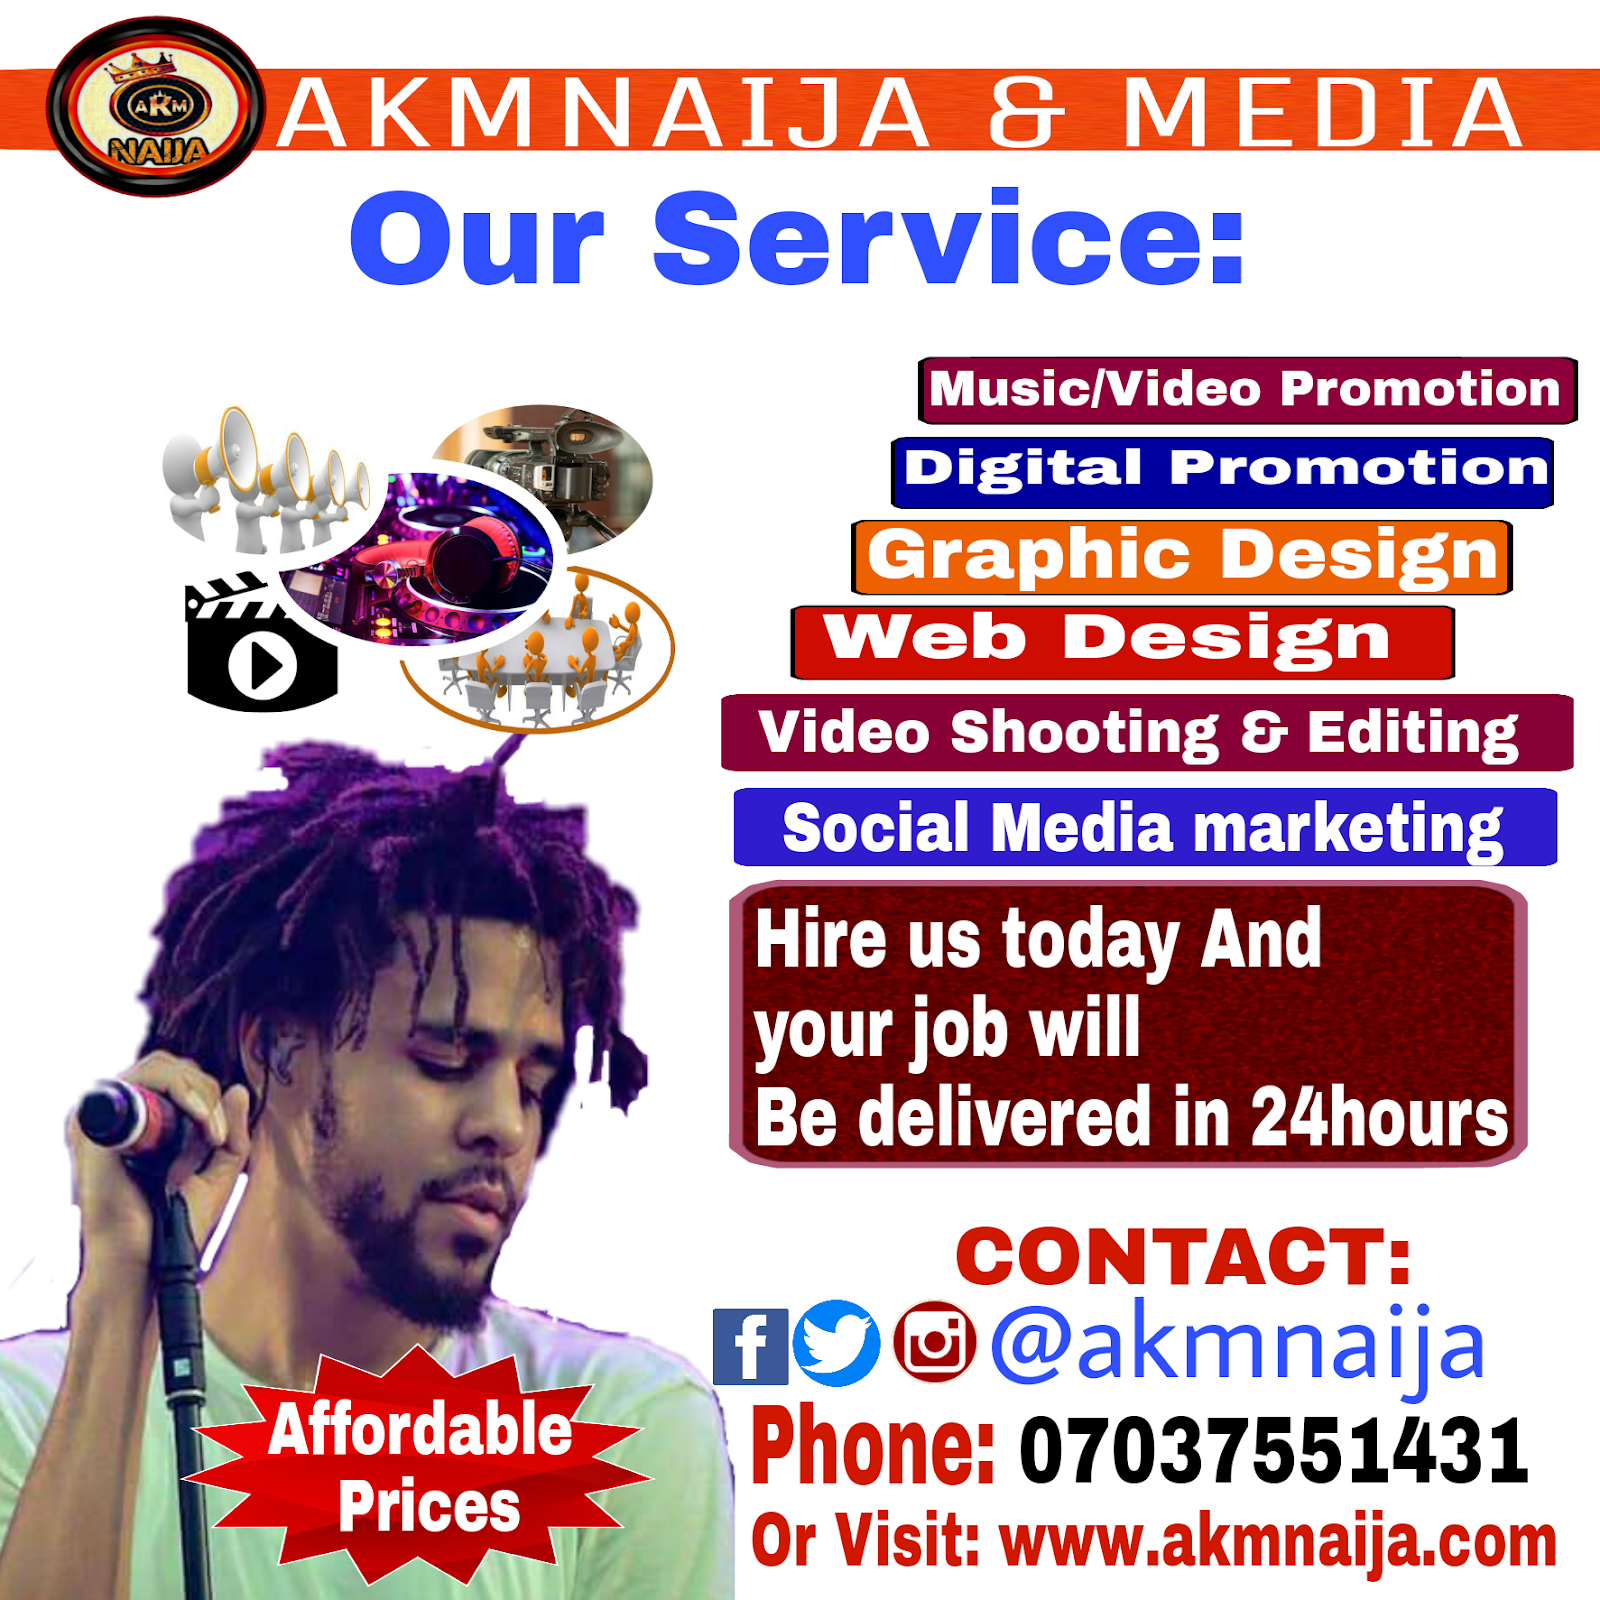 Hire us today, Let's work on your next project